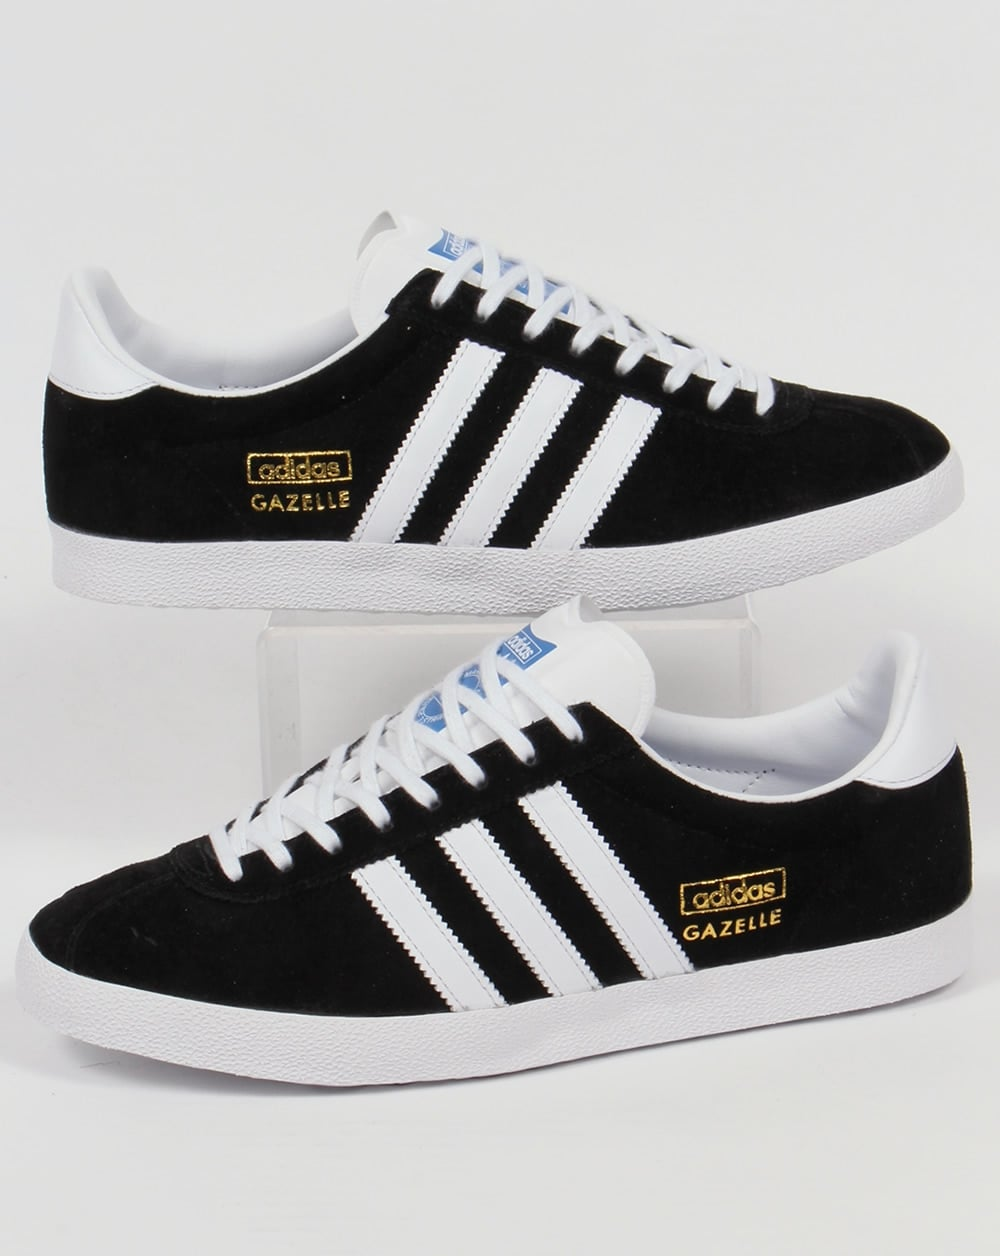 c768bec71 new arrivals gazelle og womens core black 917ad 839d8; cheap adidas gazelle  og trainers black white 7c68d 7c960